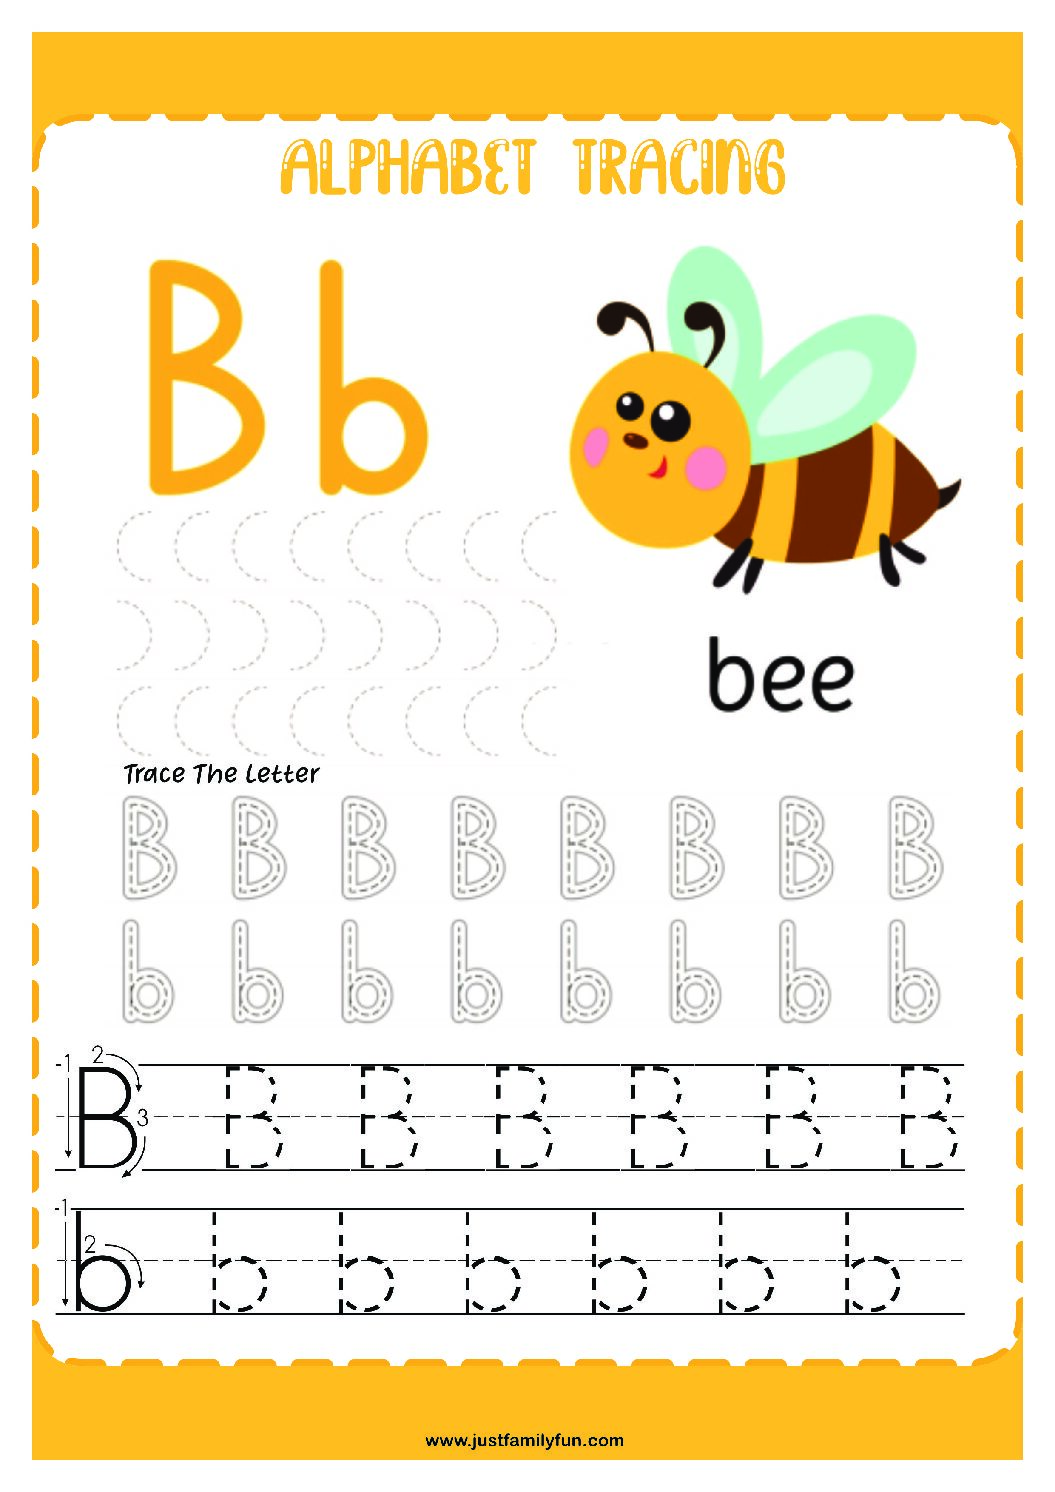 Alphabets_2-pdf Free Printable Trace The Alphabet Worksheets for Kids.